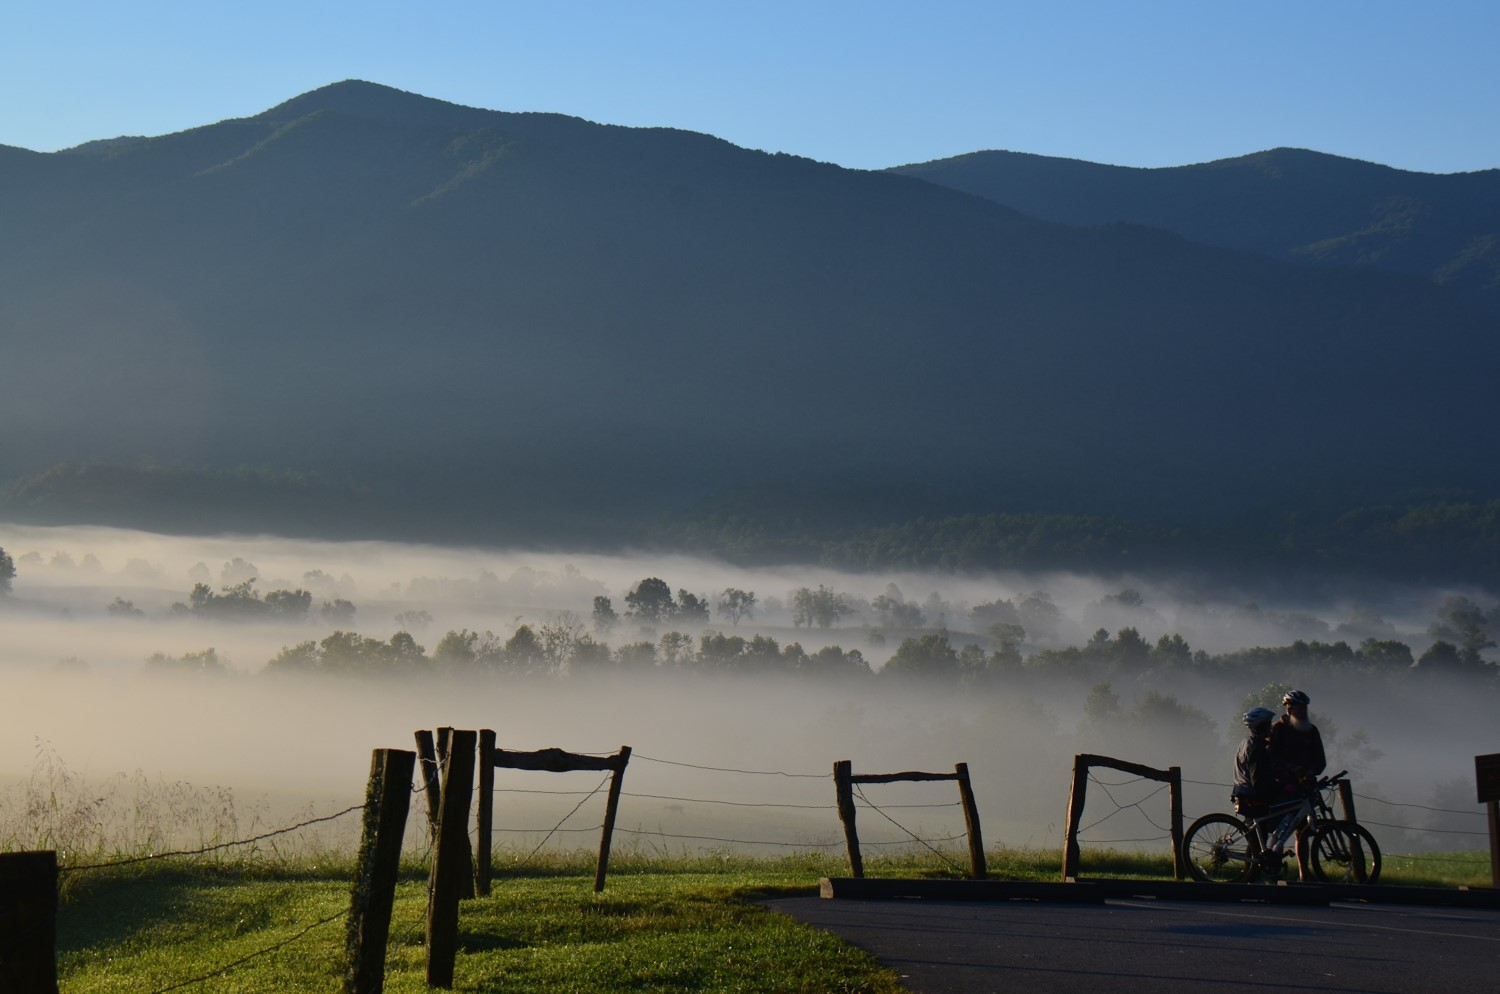 Pictured: Bicycles on Cades Cove Loop Road (Photo provided by Great Smoky Mountains National Park)